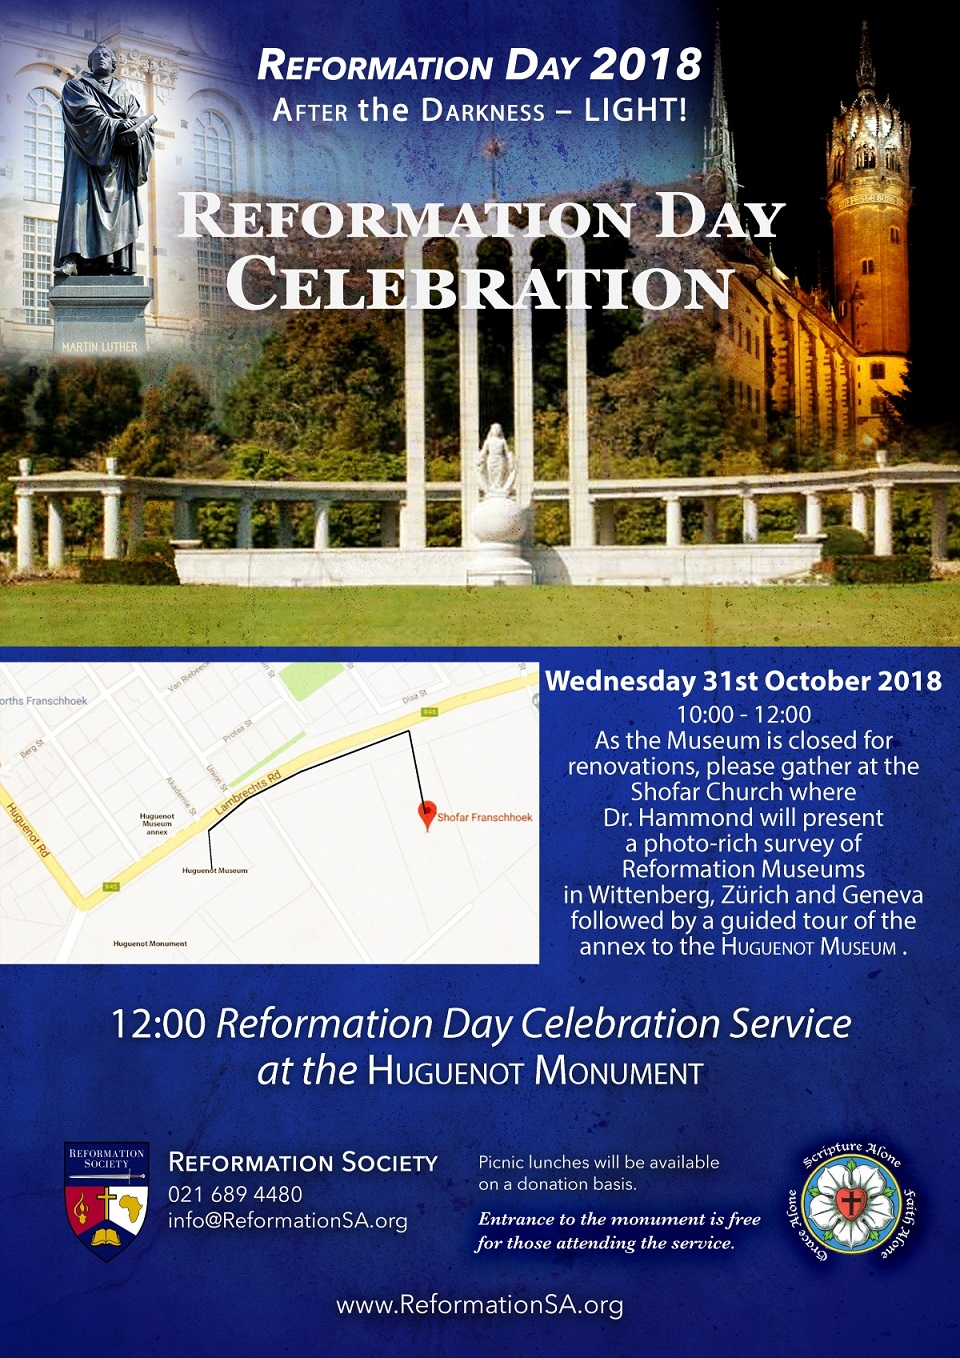 A3 Reformation Day 2018 event poster updateweb